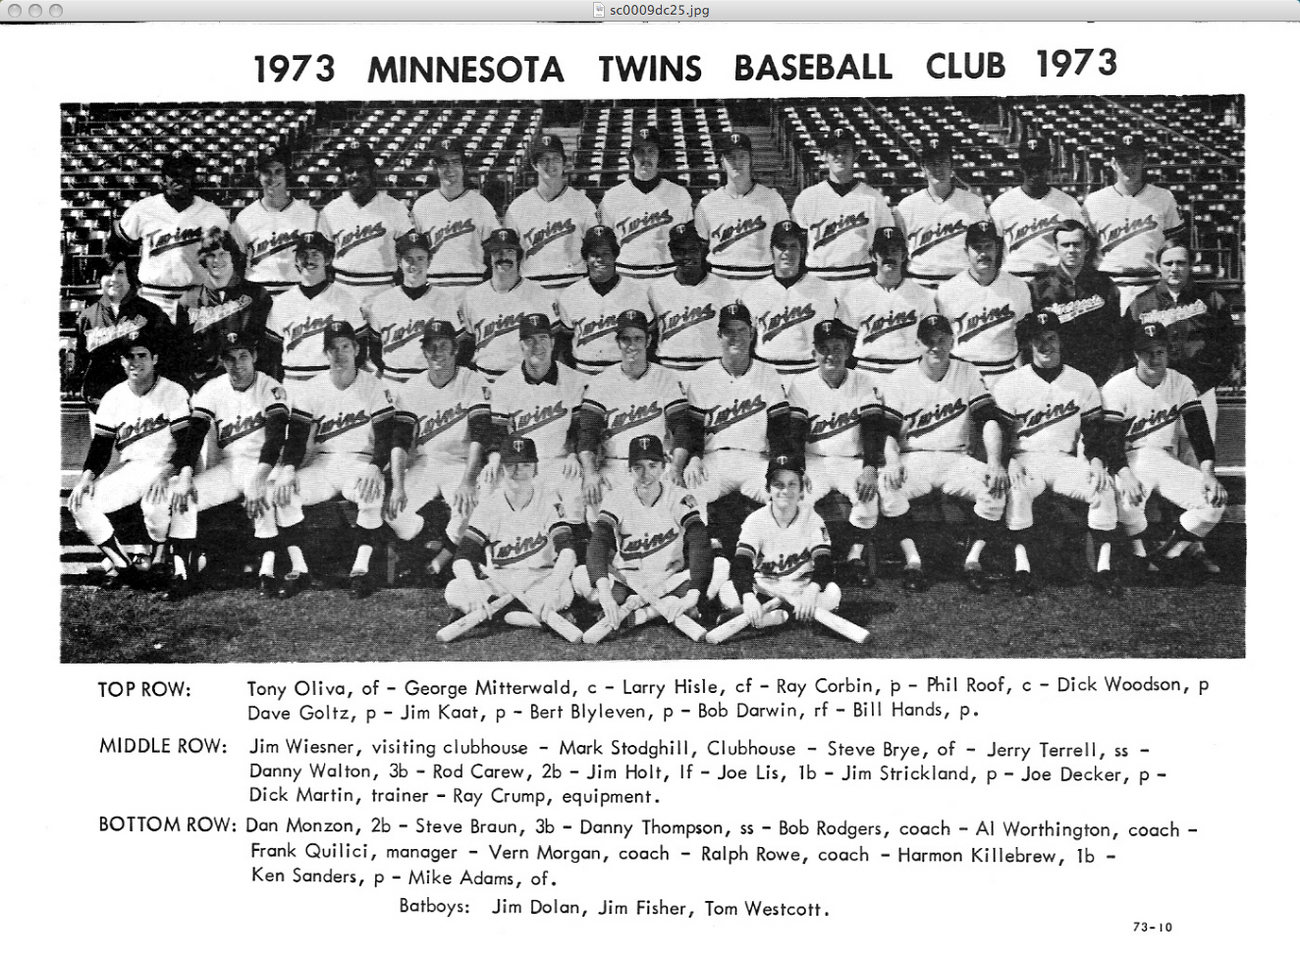 1973 Minnesota Twins Team Photo